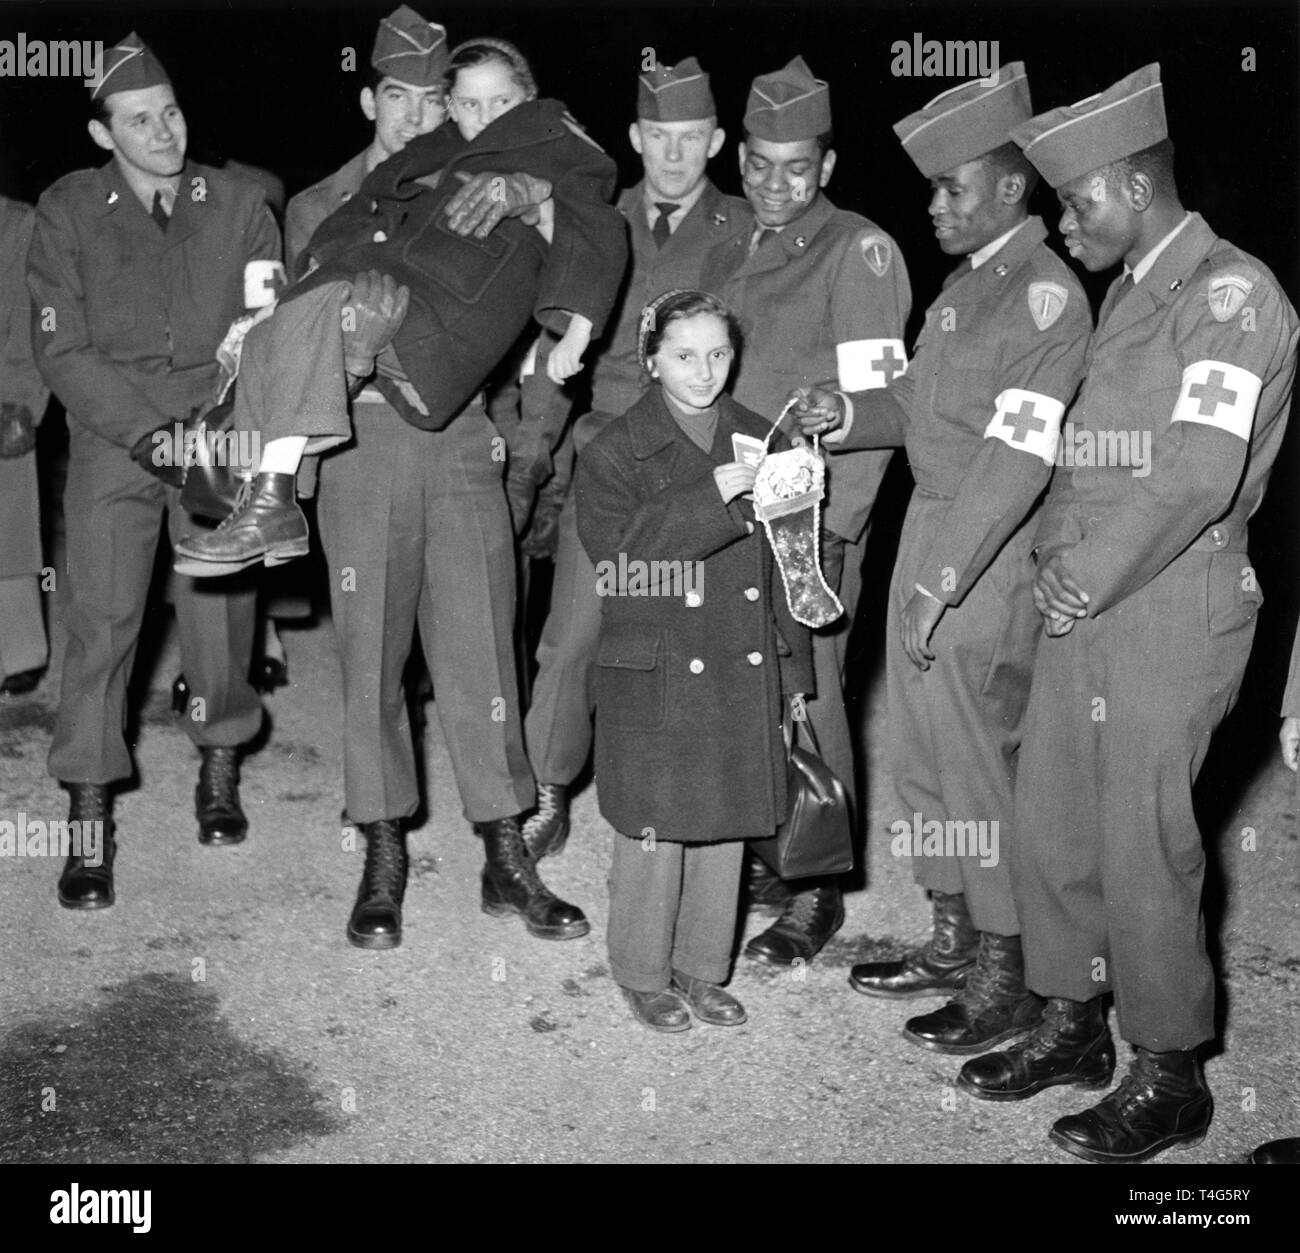 20515d6b1 Refugees in a camp of the US Army on 10 December 1956 in Munich ...